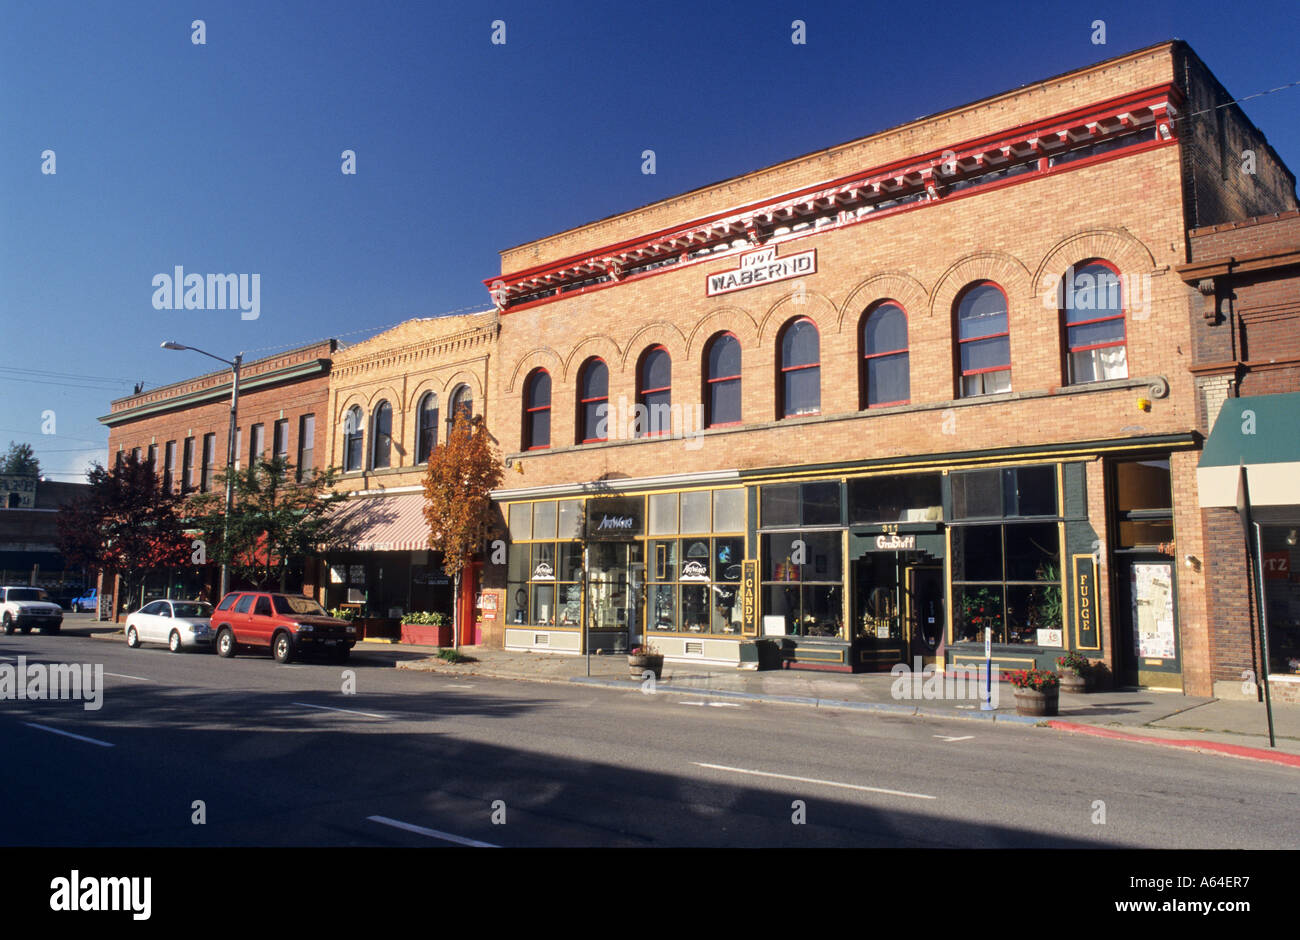 Historic buildings, Mainstreet of Sandpoint, Lake Pend Oreille, Idaho, USA - Stock Image